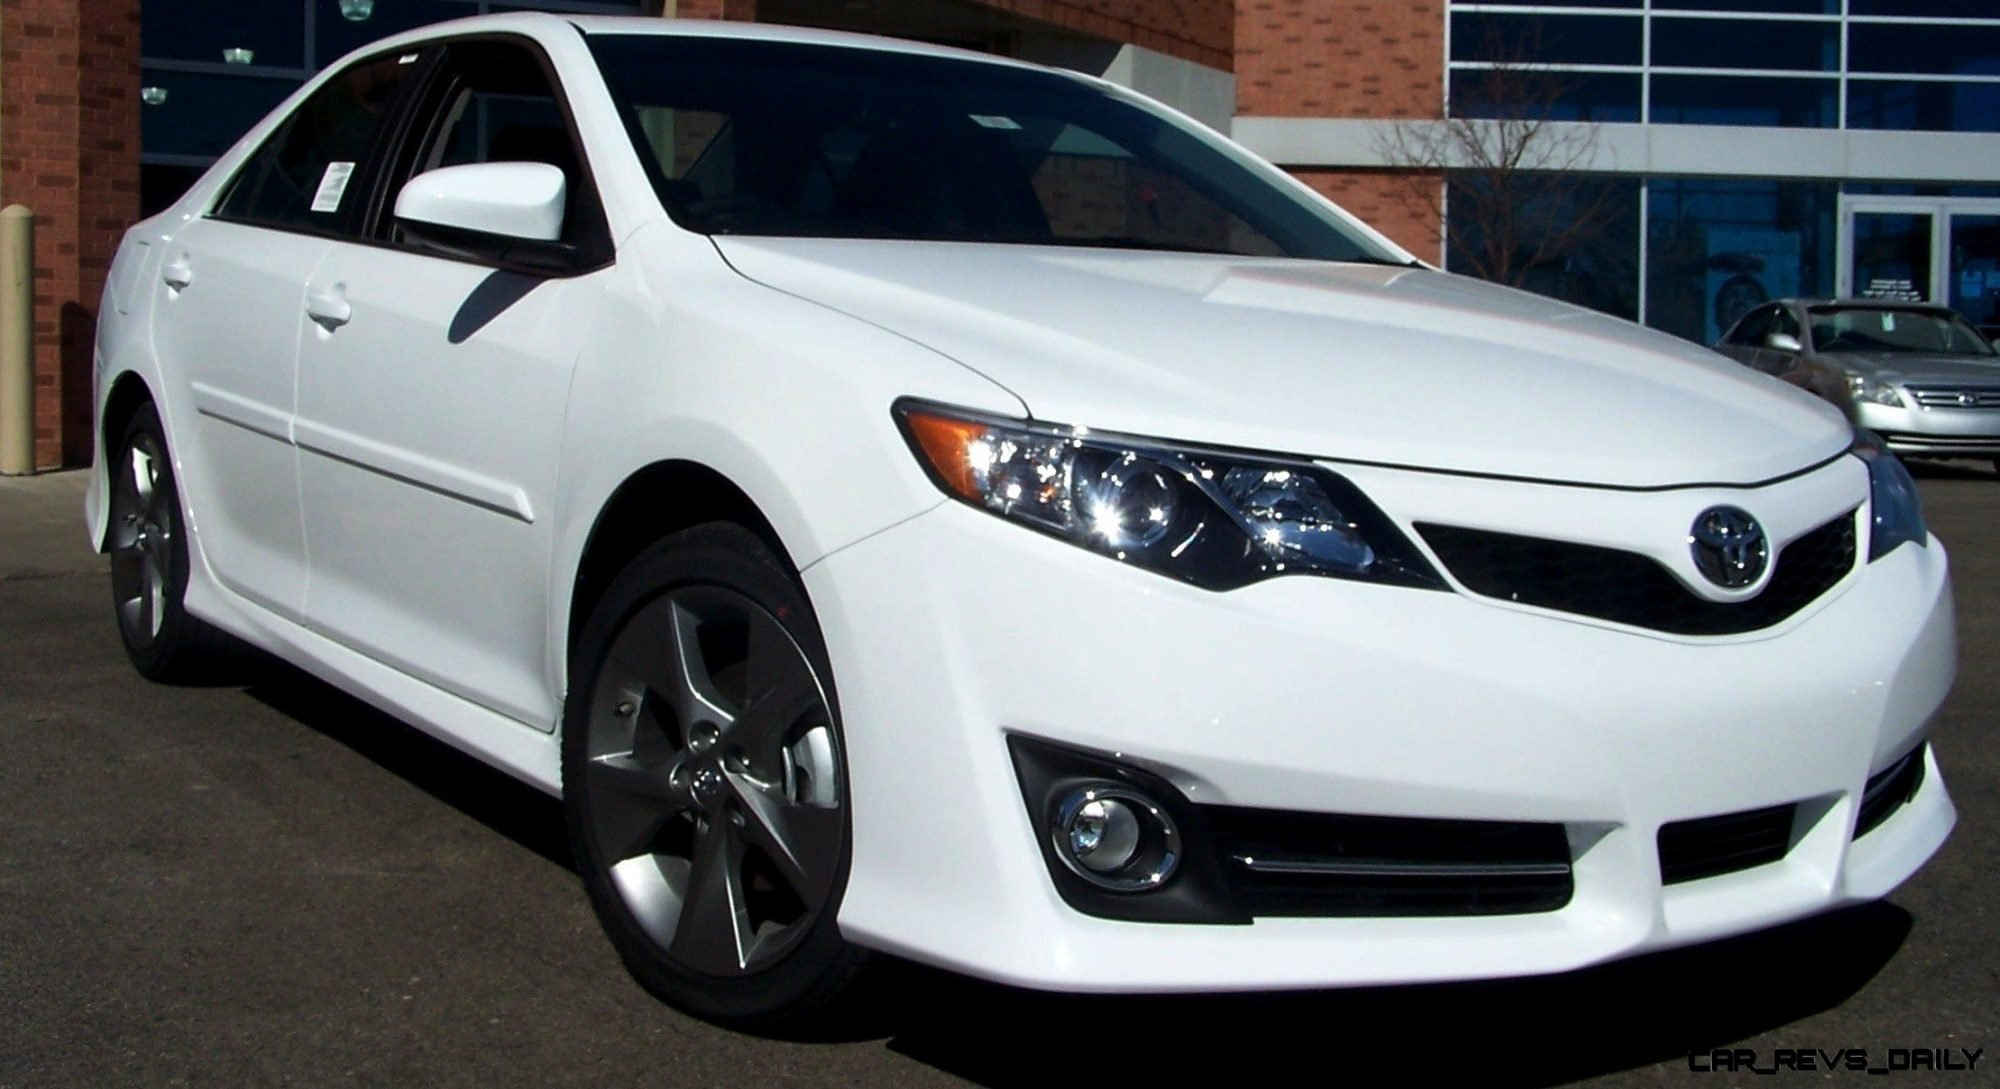 Car Shopping: 2014.5 Toyota Camry SE Updates Styling With ...